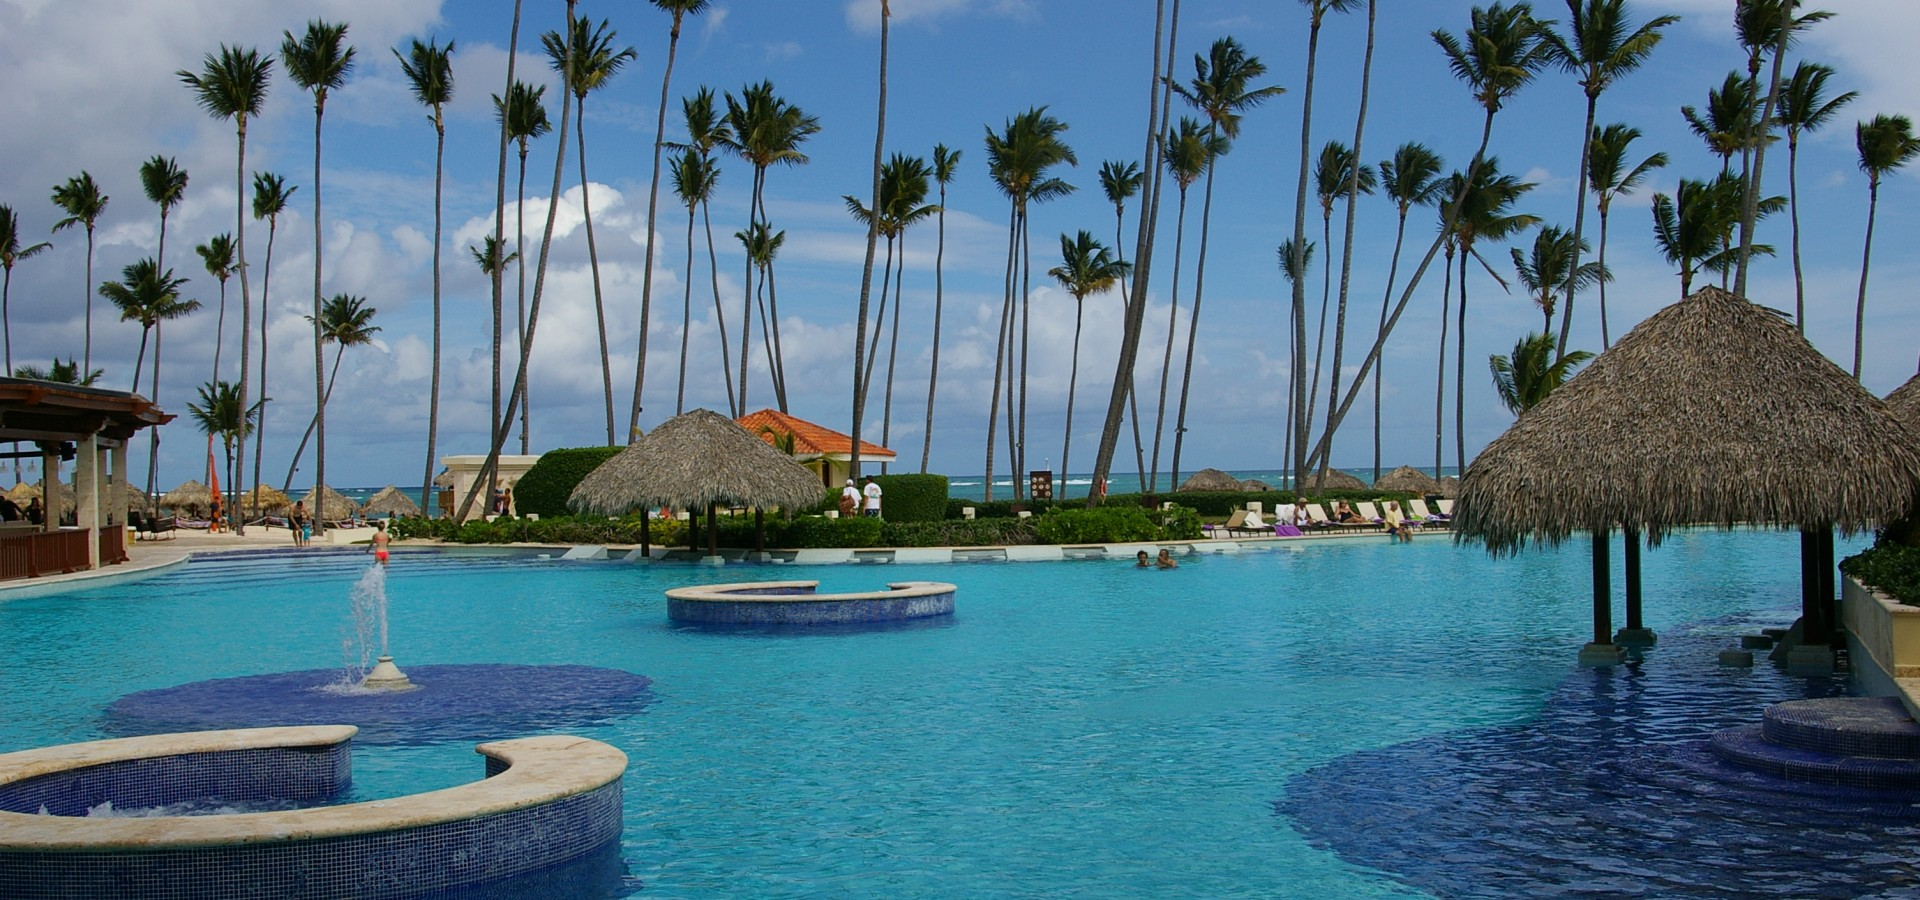 Punta Cana In The Dominican Republic Top Tourist